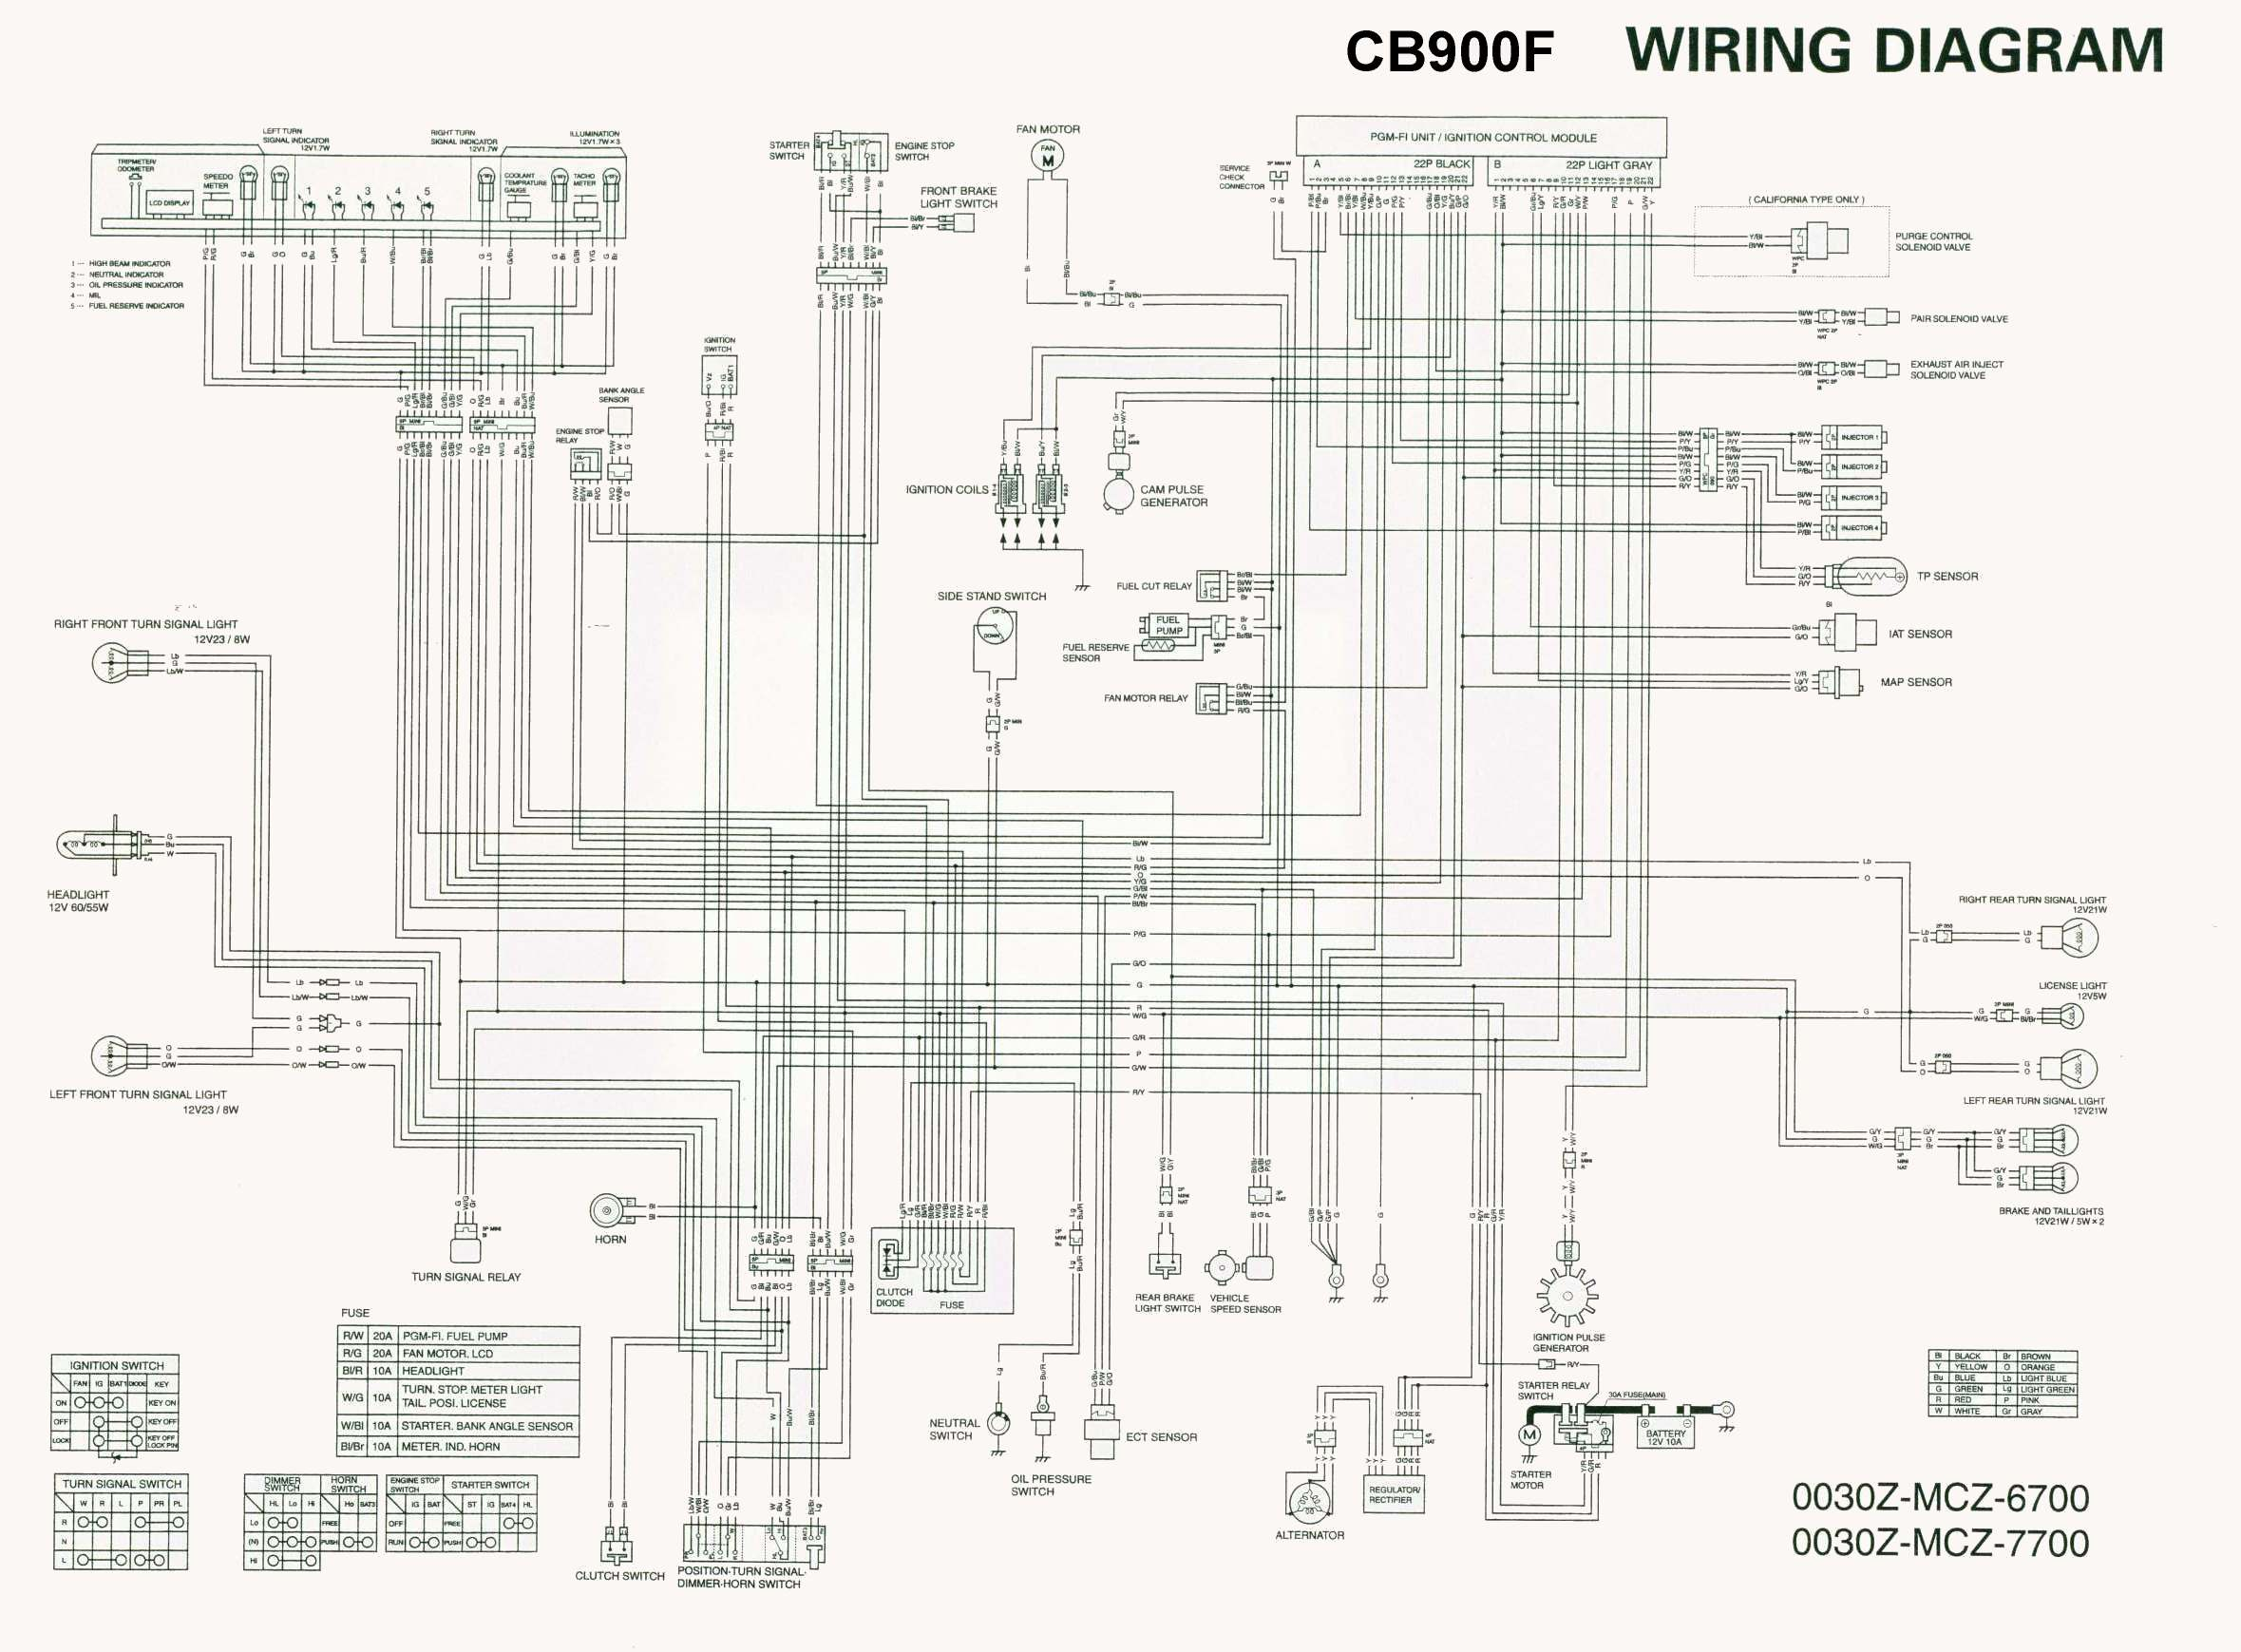 [DIAGRAM] Dicktator Wiring Diagram FULL Version HD Quality